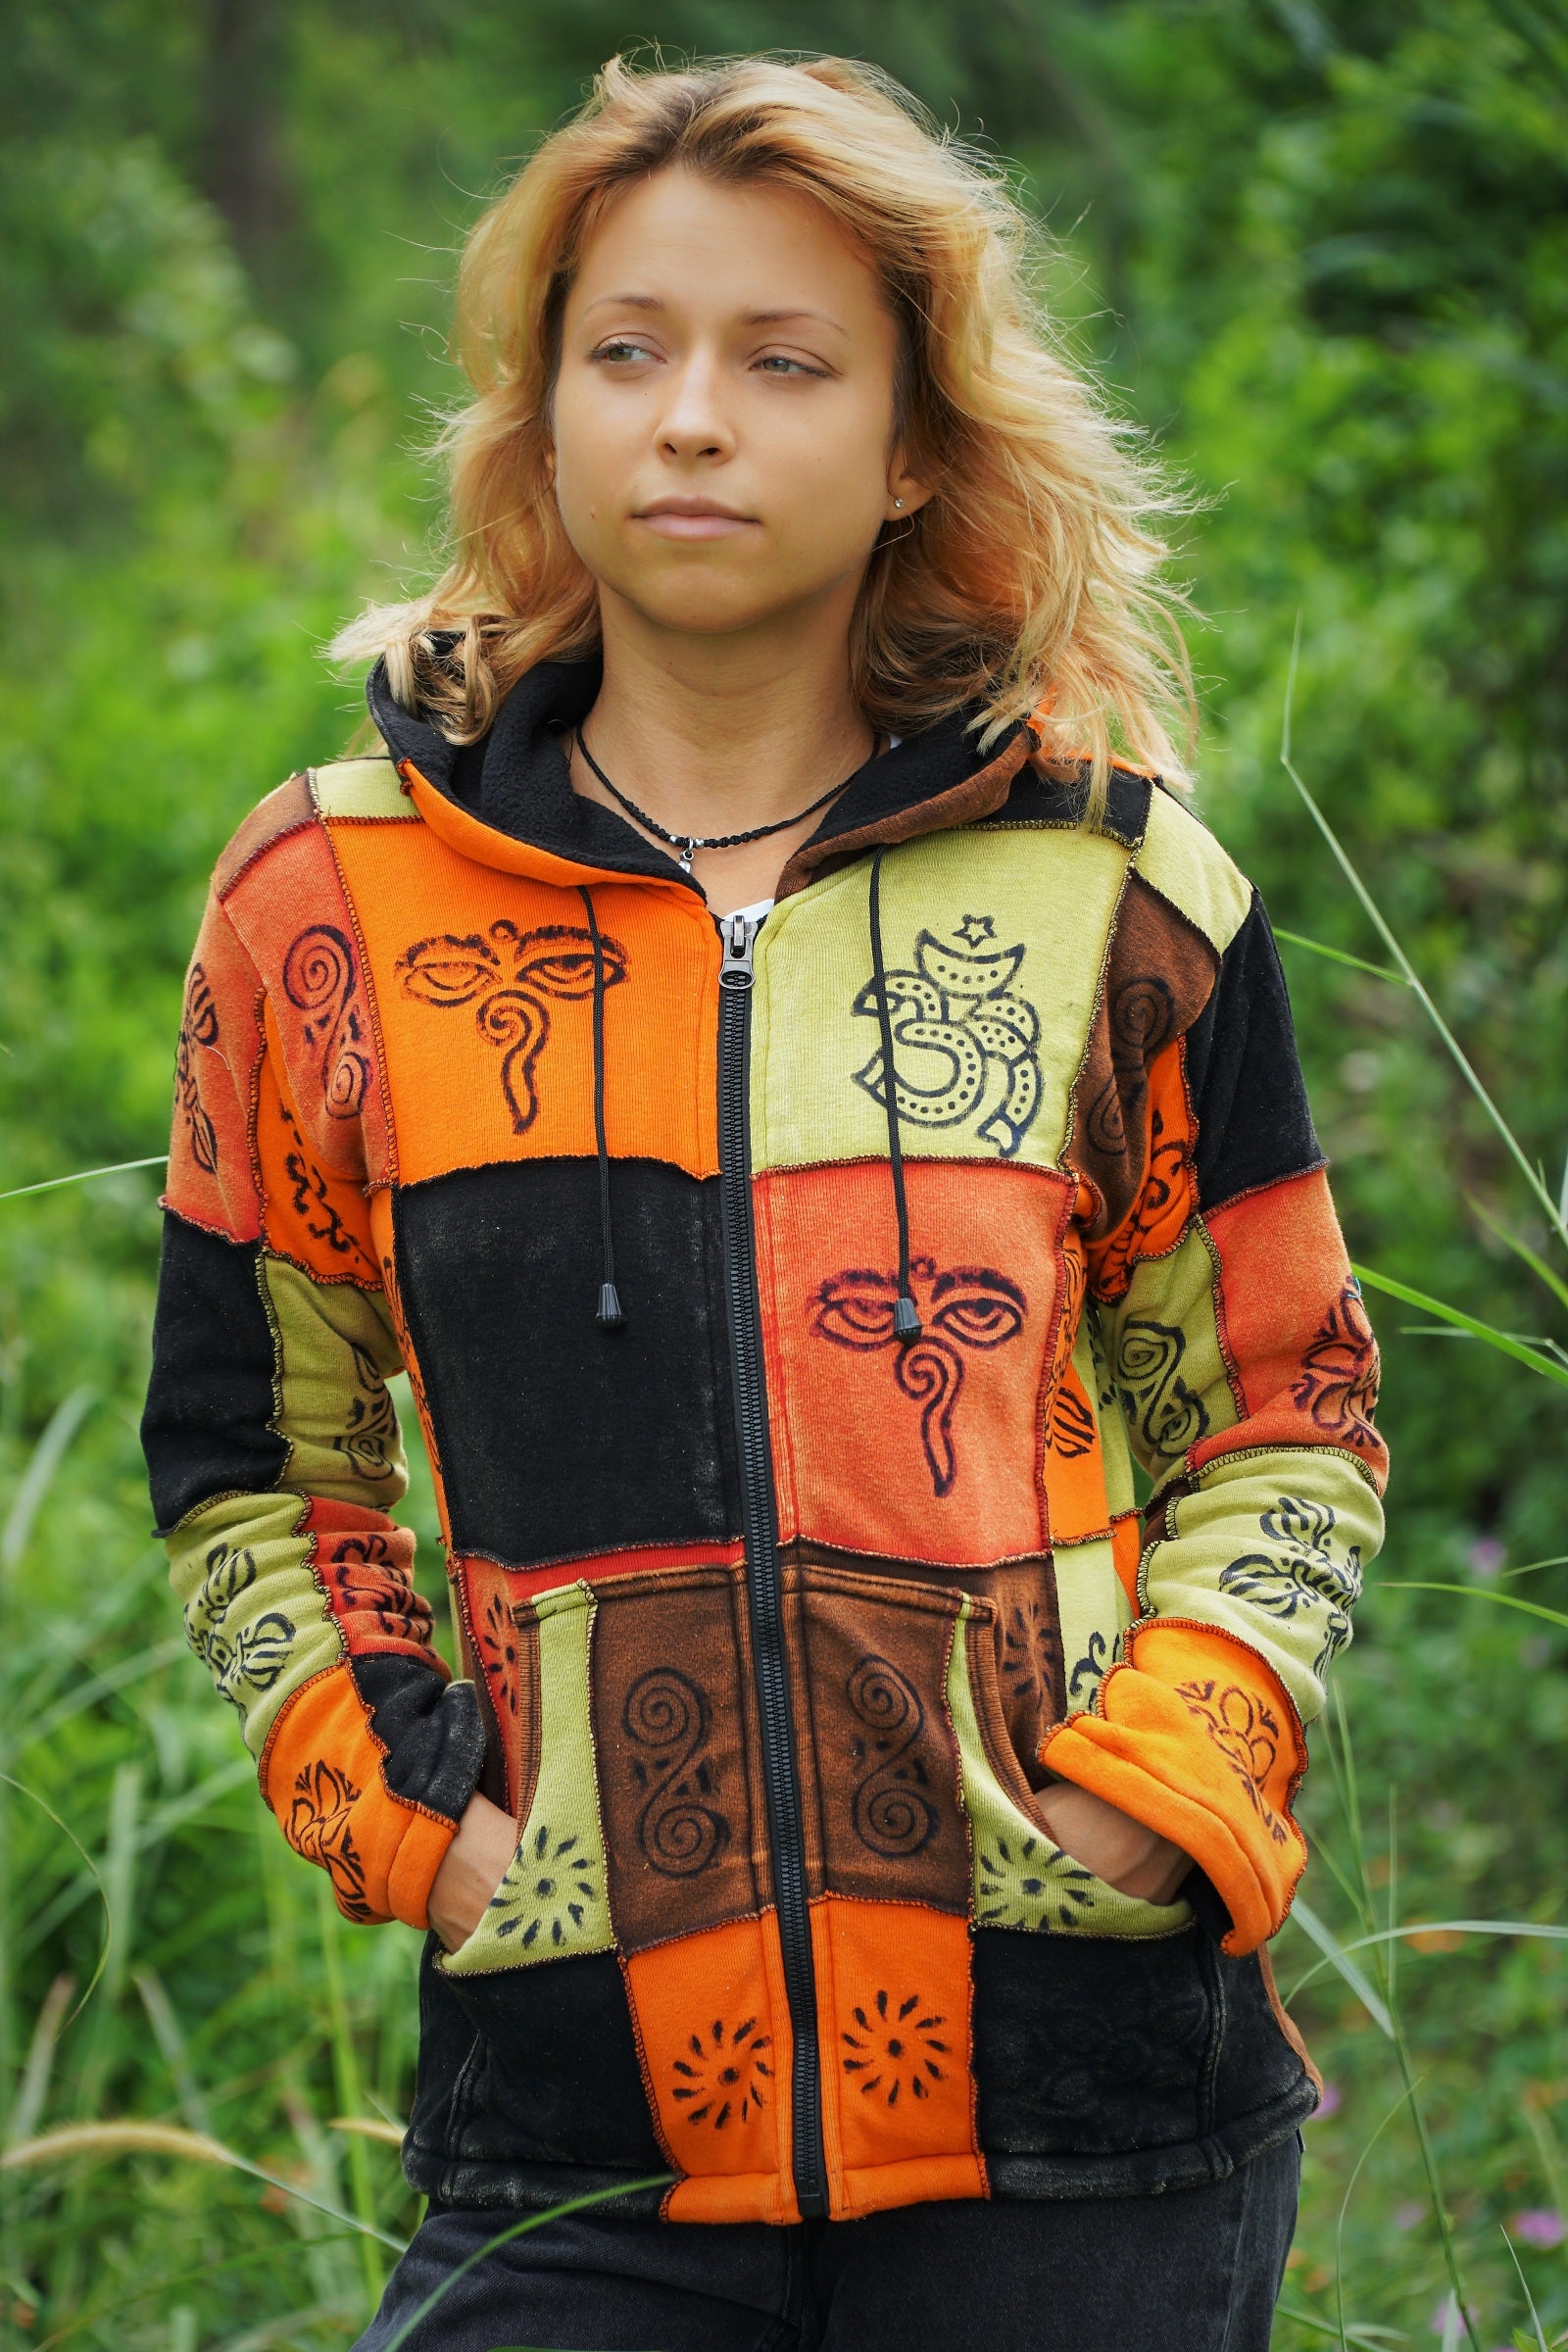 Hoodie - Fleece Lined - Patchwork Orange & Black with Buddha Eye